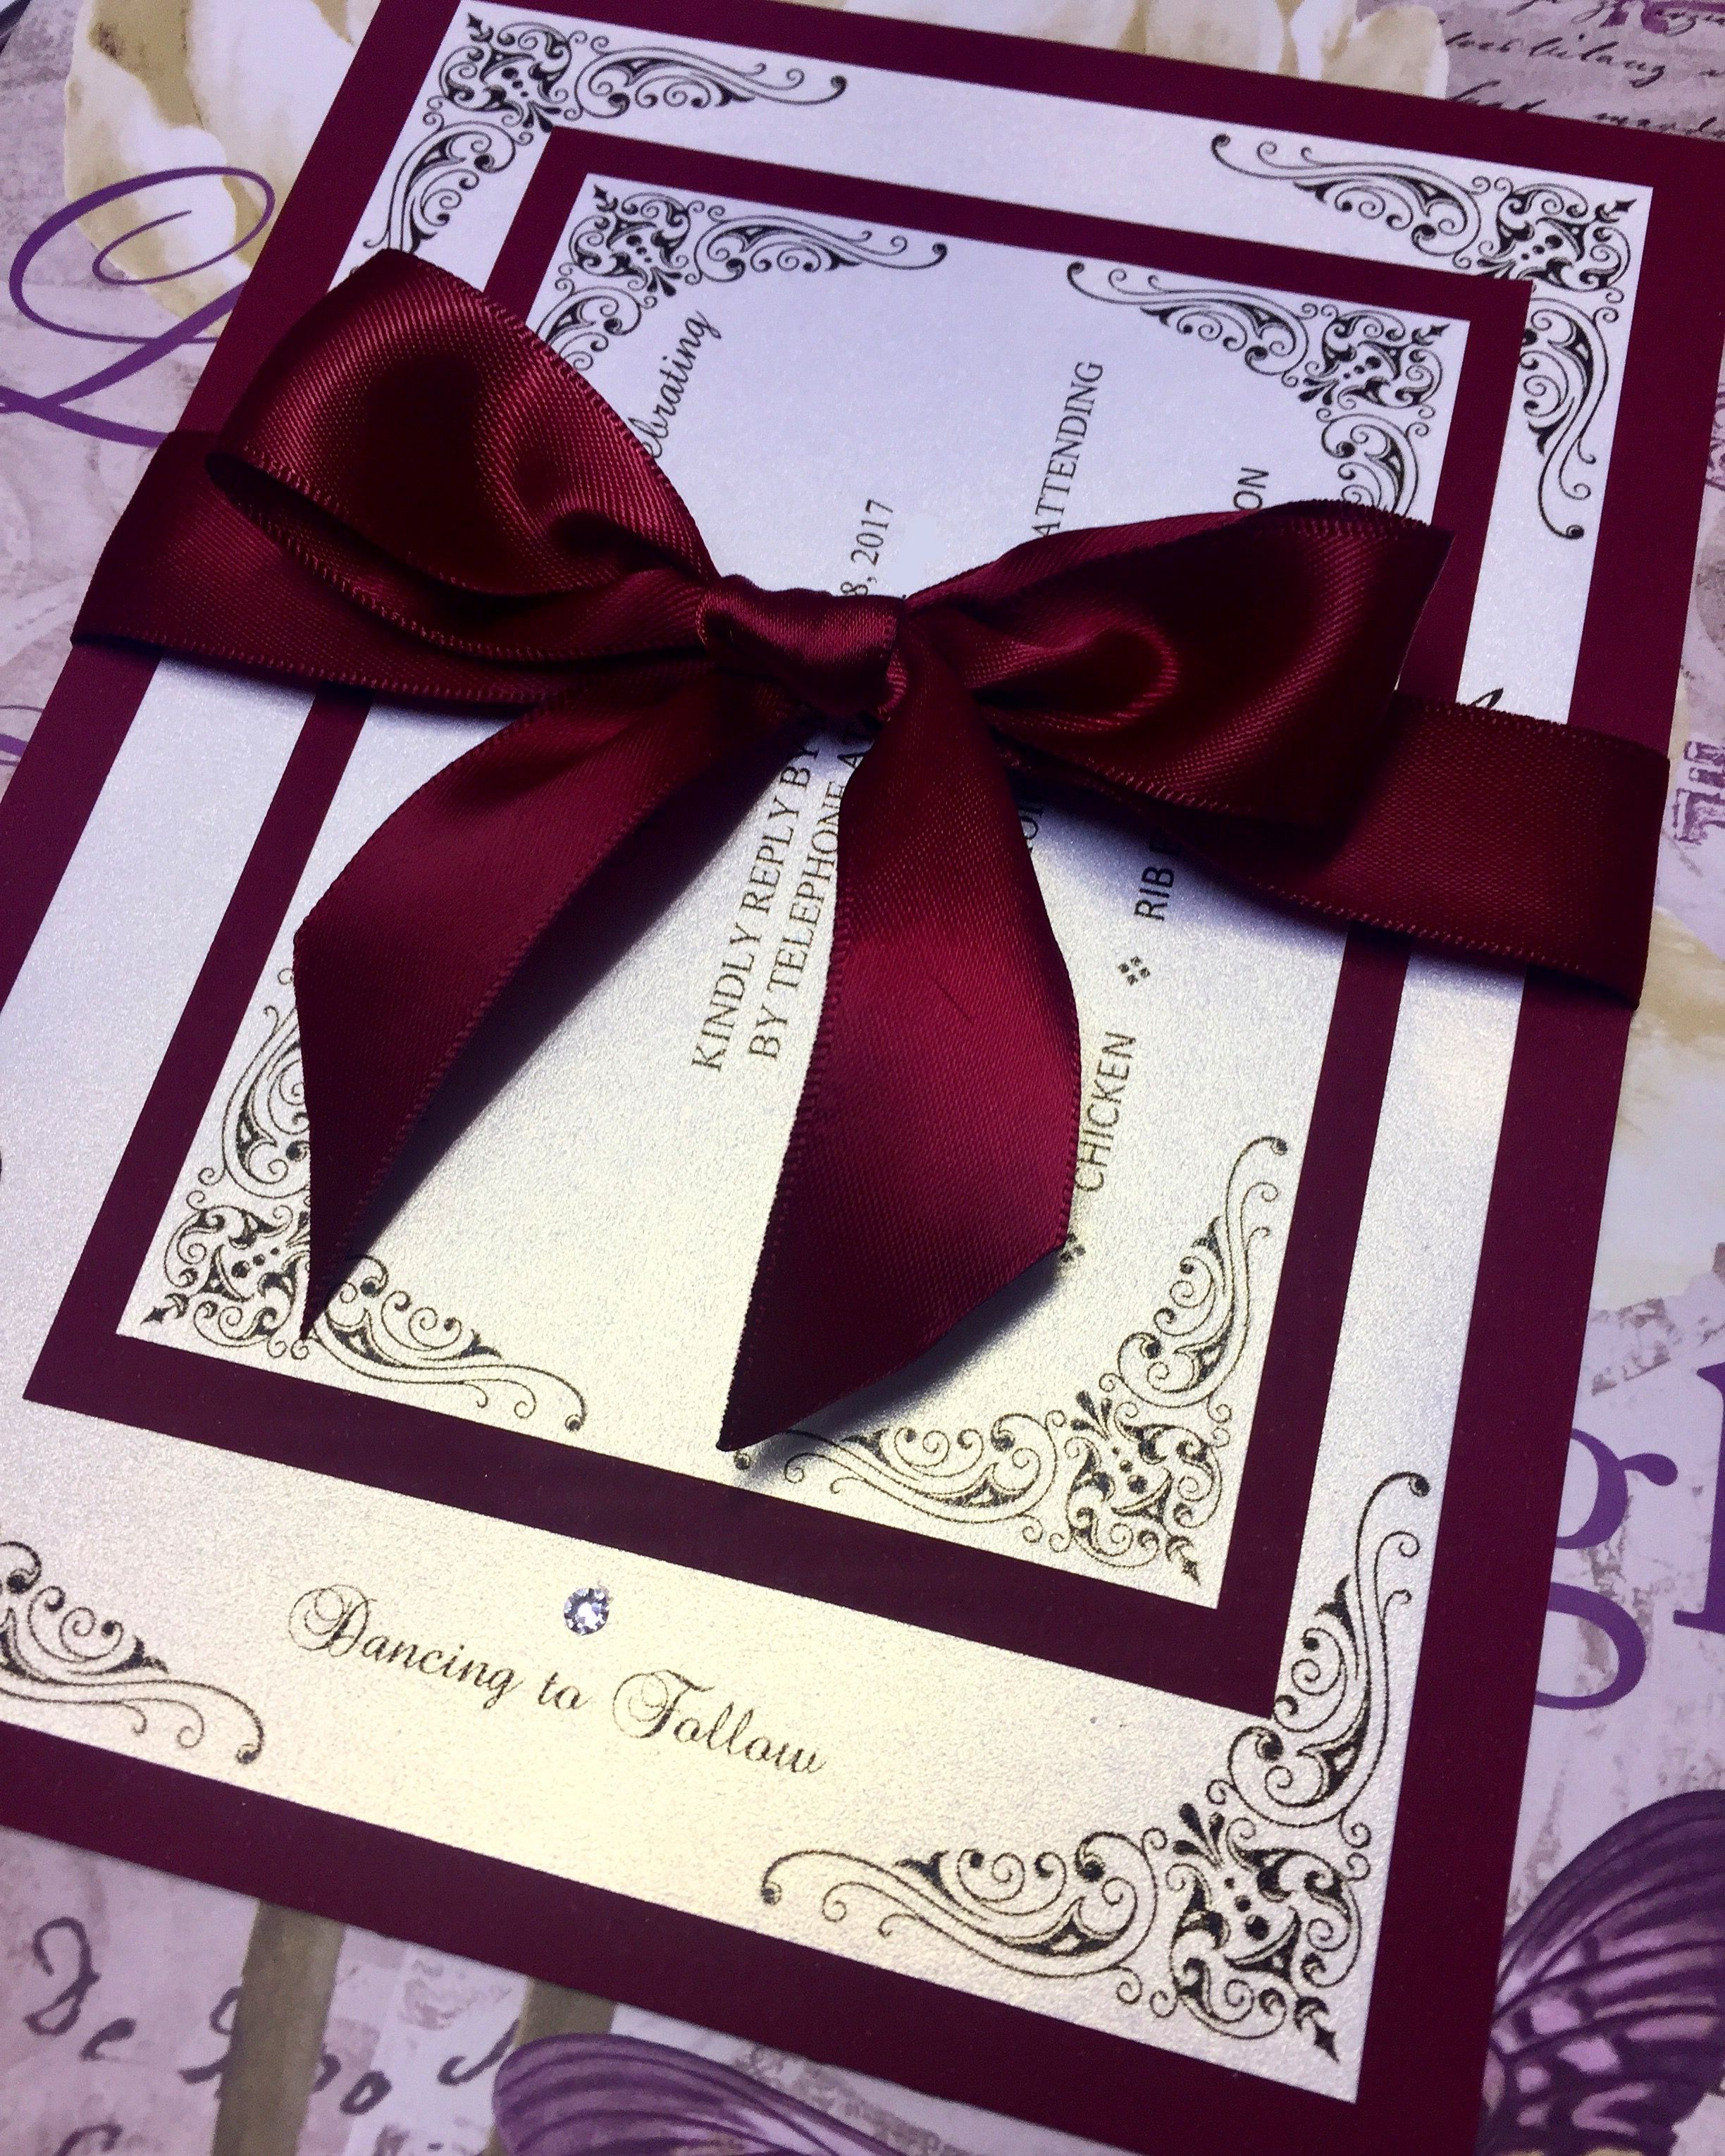 Wedding invitations made by Designs With Love